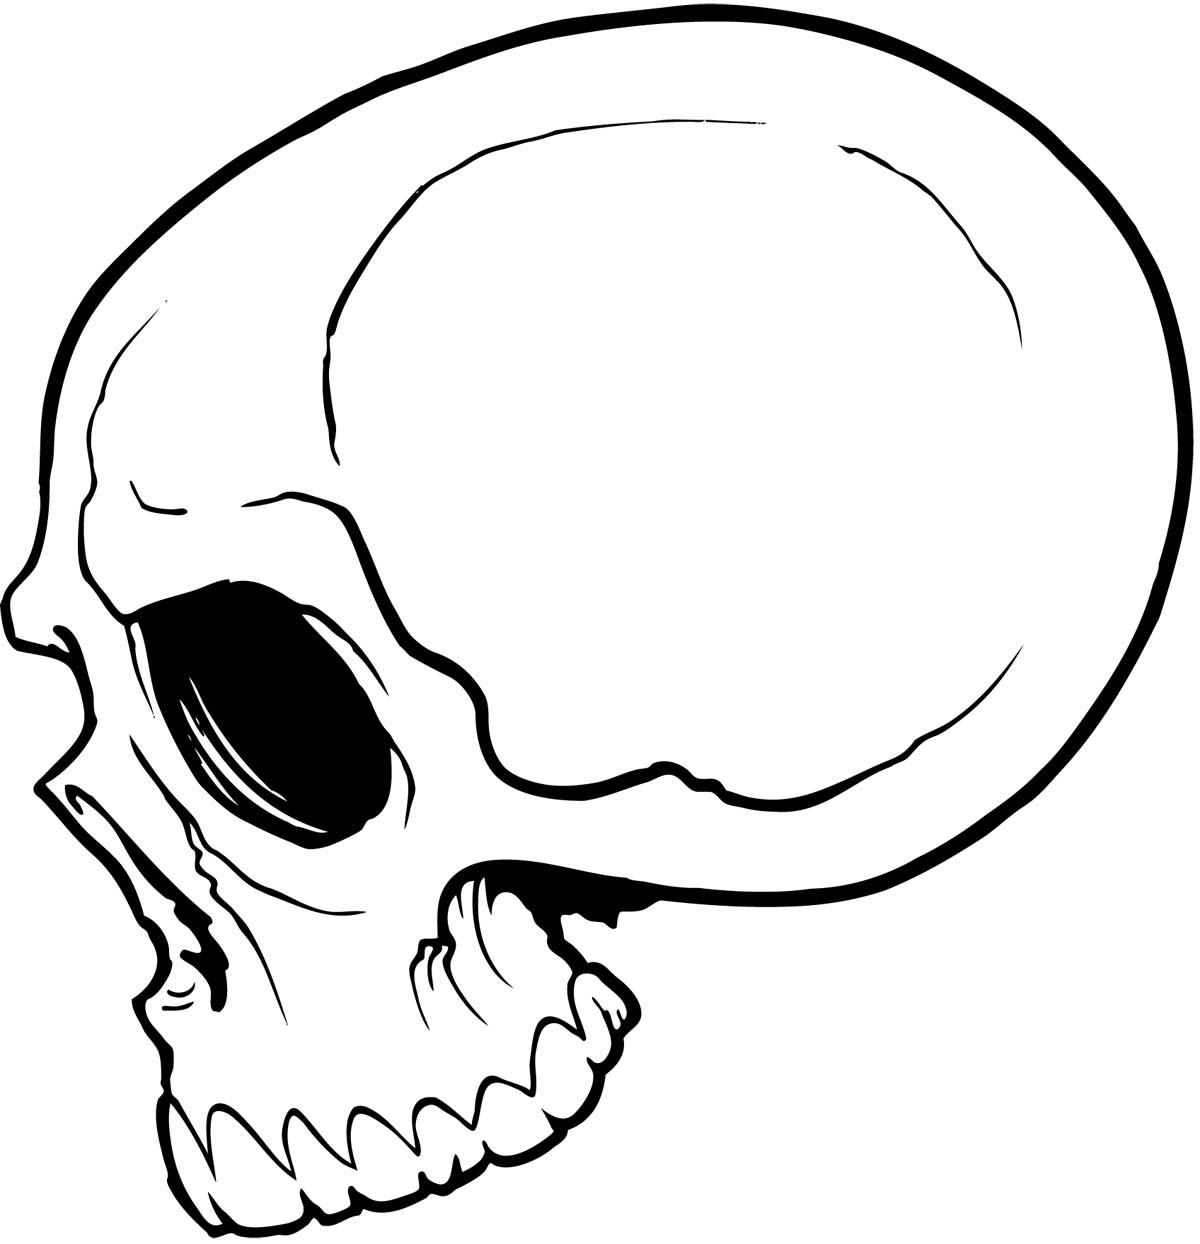 Skull with flames clipart side view